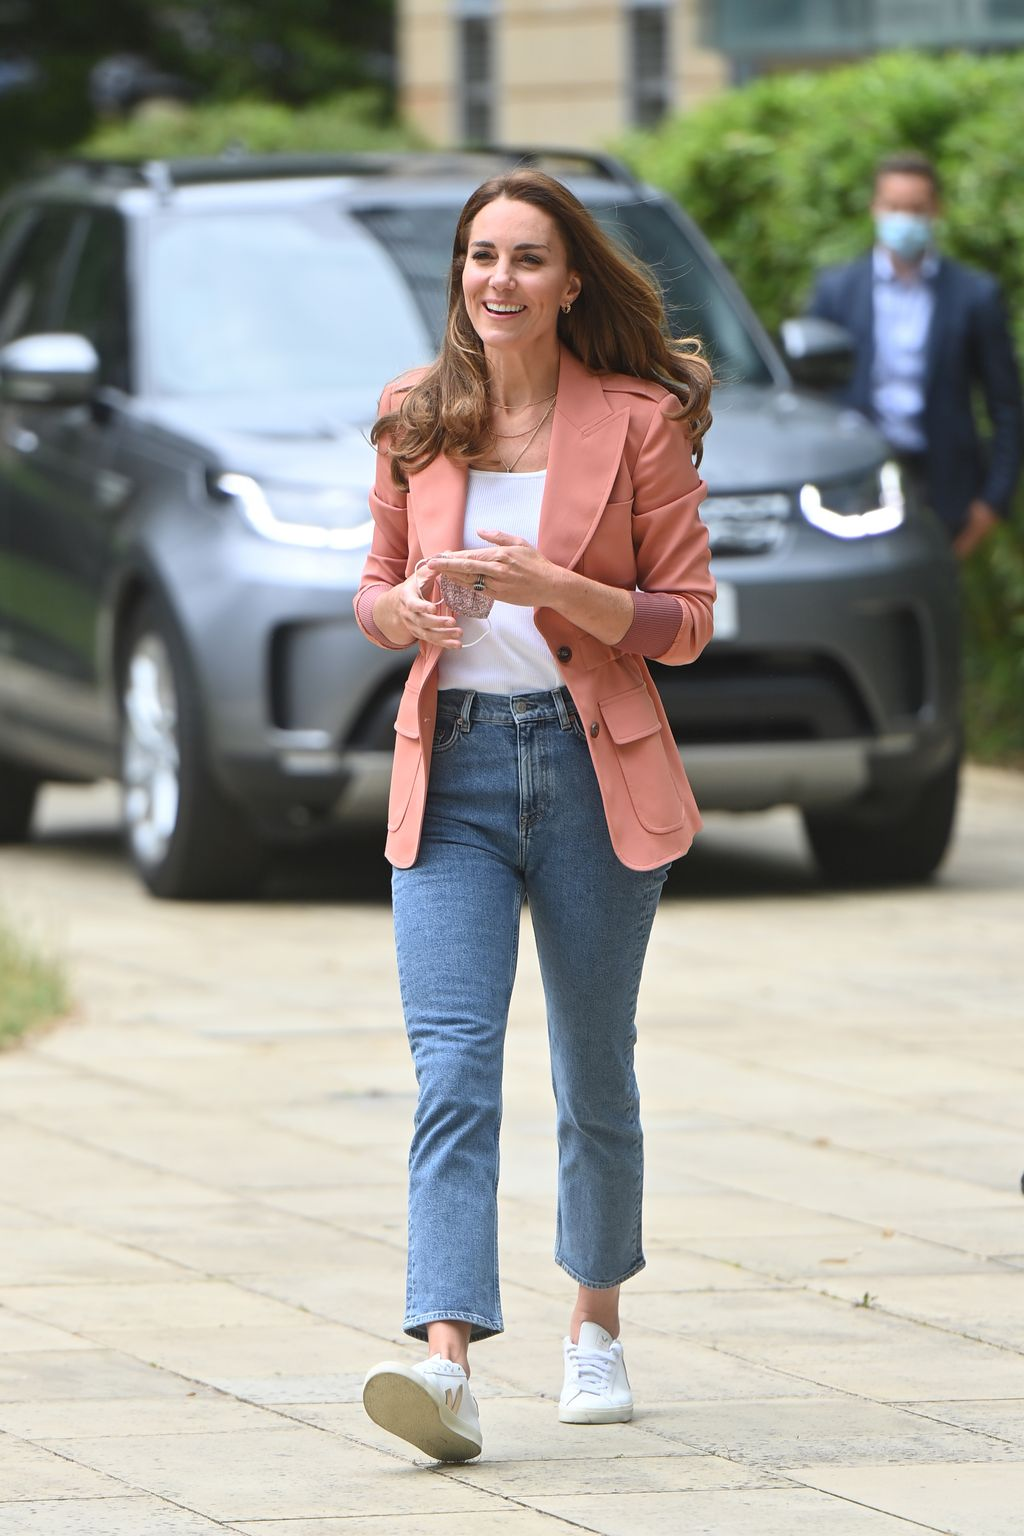 LONDON, ENGLAND - JUNE 22: Catherine, Duchess of Cambridge visits the UrbanNature Project at the Natural History Museum on June 22, 2021 in London, England. (Photo by Geoff Pugh - WPA Pool/Getty Images)